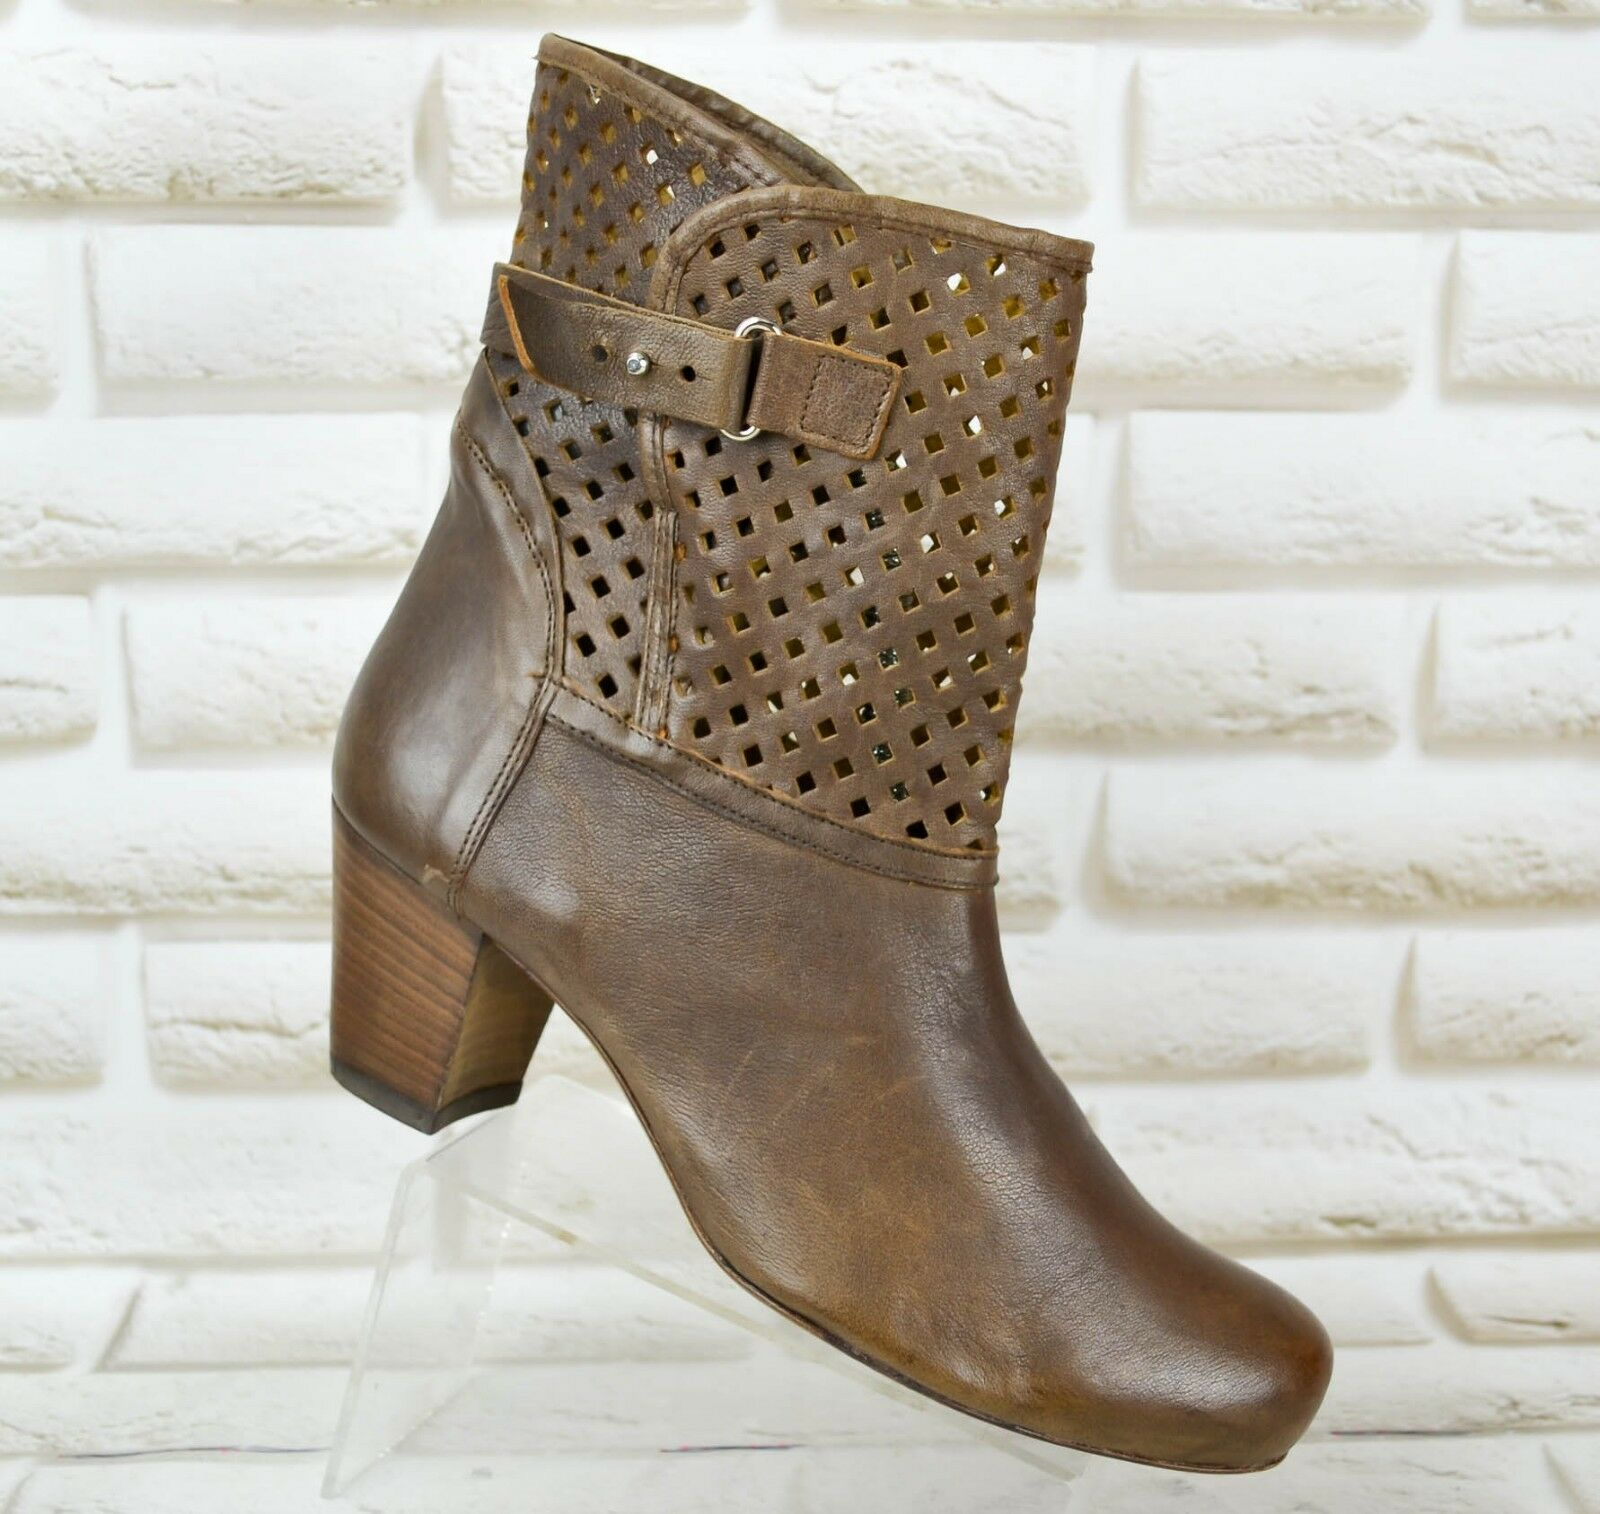 ALBERTO FERMANI Leather Womens Ankle Heeled Boots Shoes 38 Booties Size 5 UK 38 Shoes EU 2594de